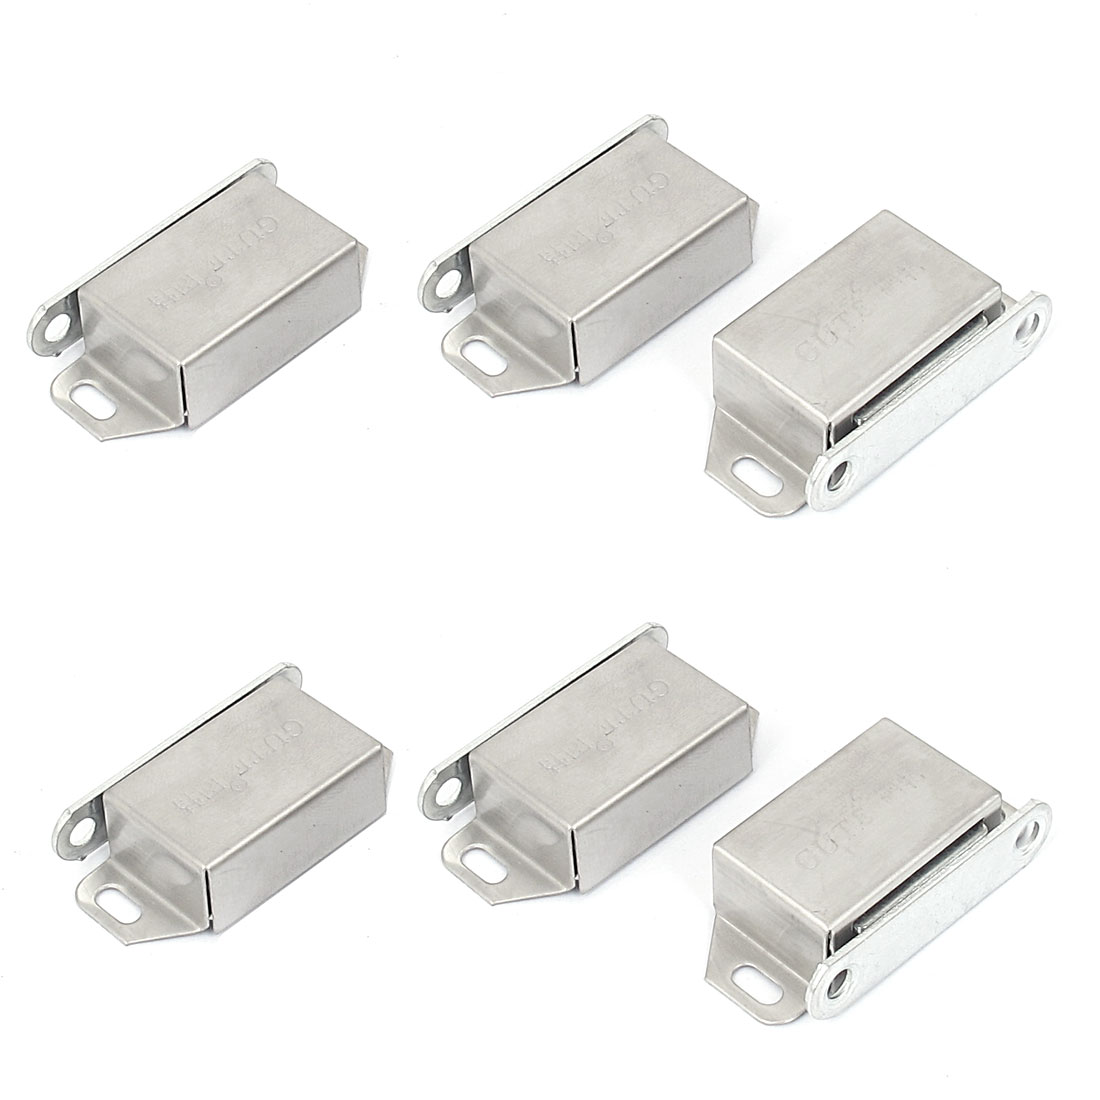 Cabinet Cupboard Metal Single Magnet Catch Latch Magnetic Door Stop Holder 6pcs